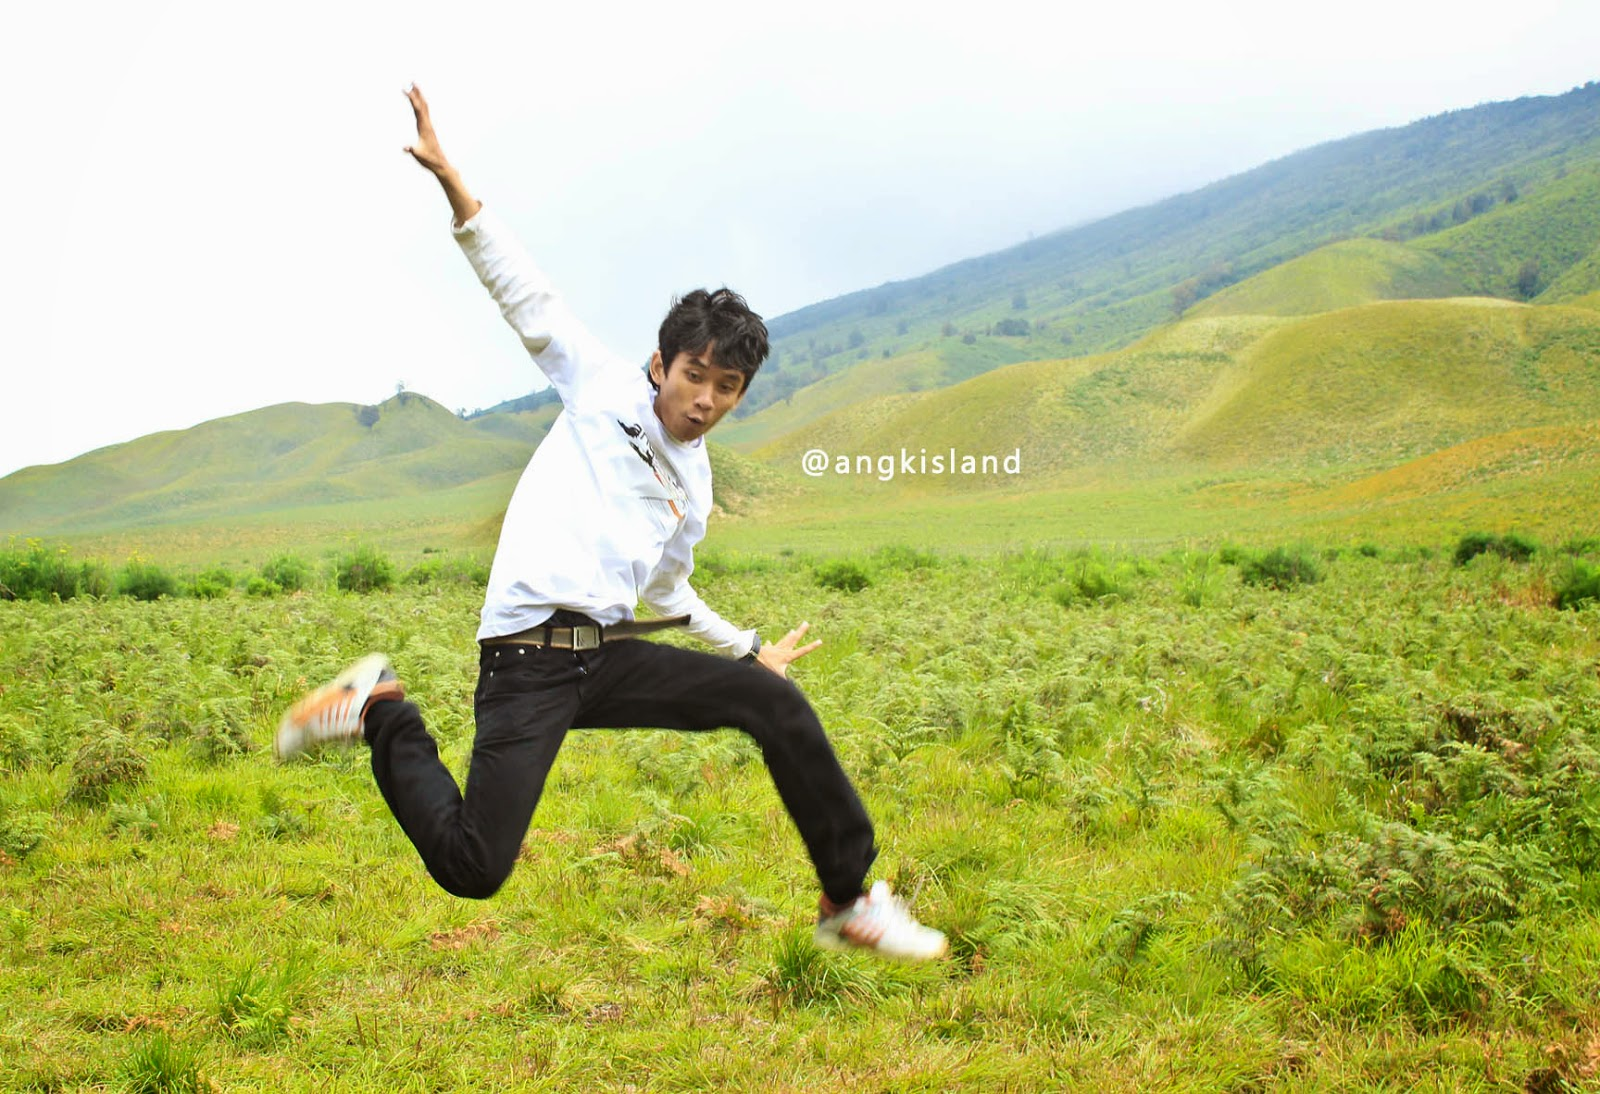 angki and jump